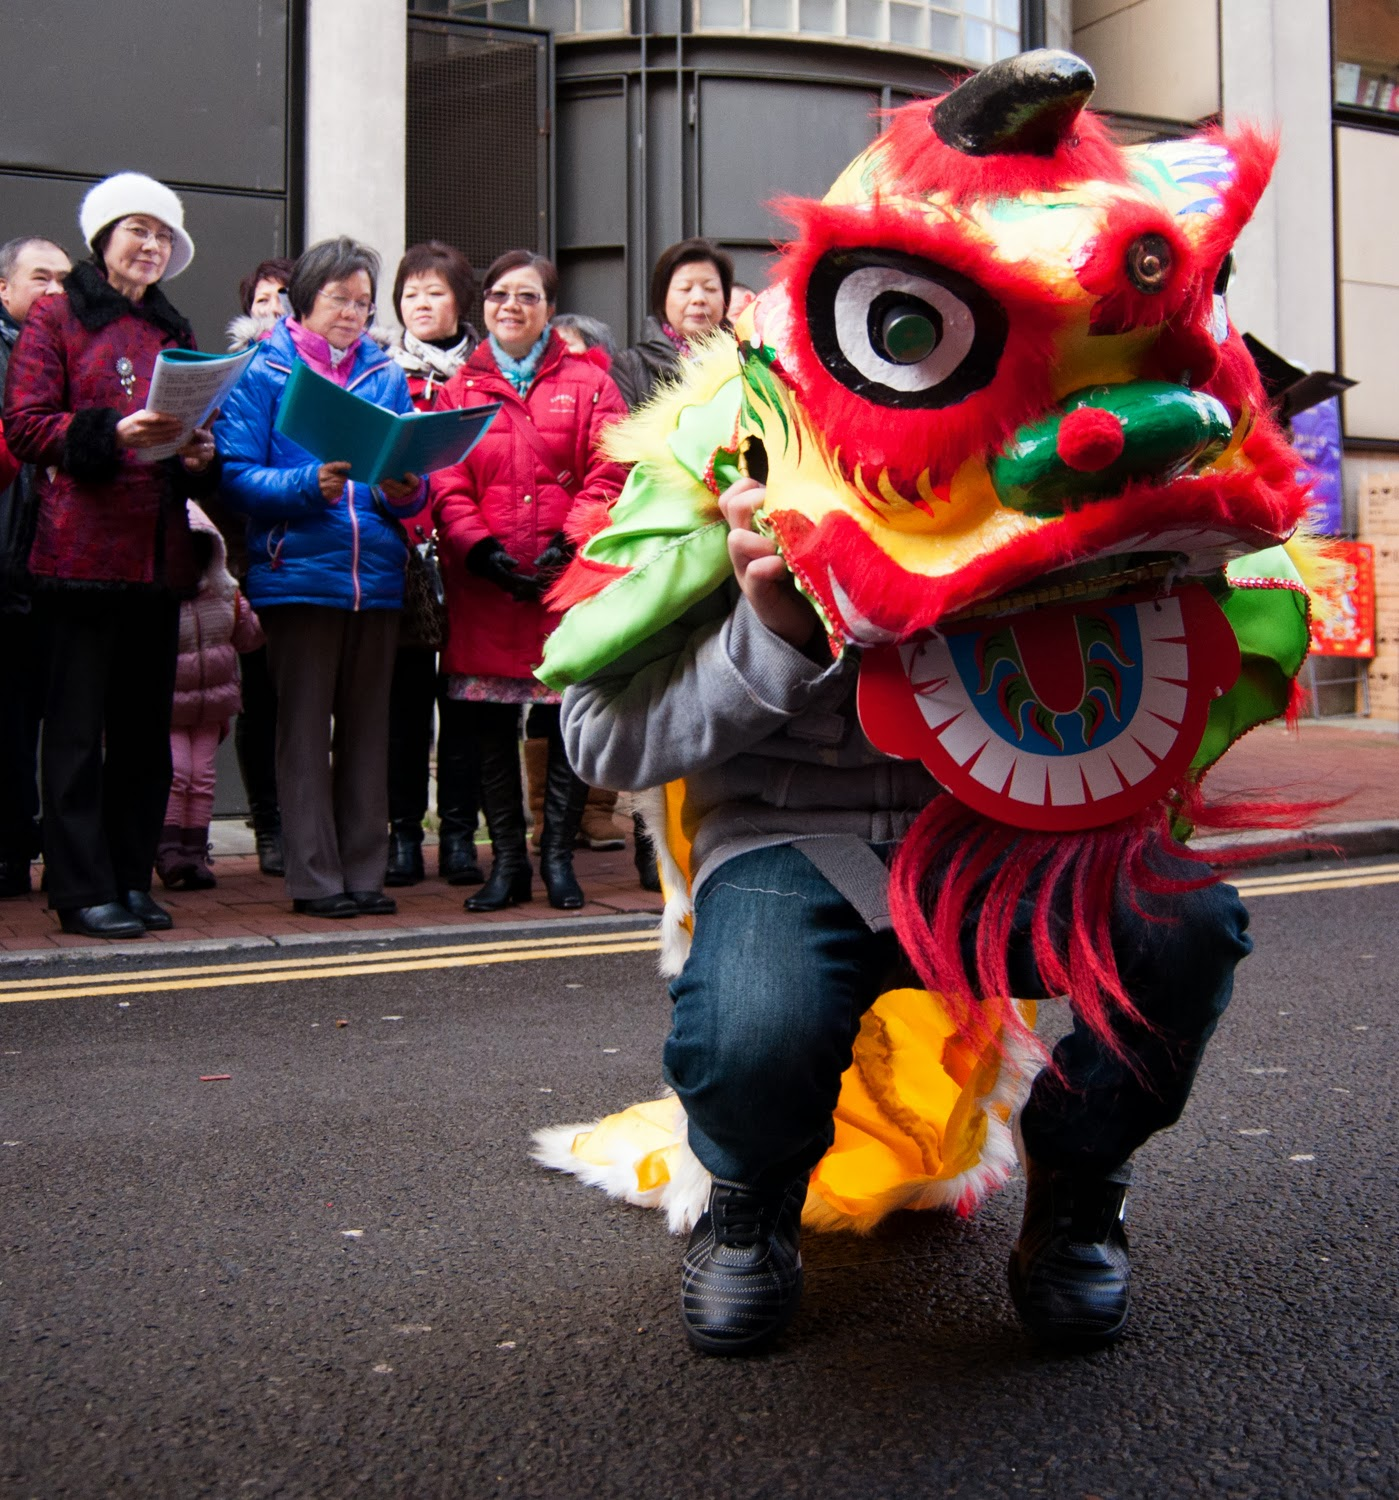 annabruce photo essay chinese new year in manchester 2014 anna photo essay chinese new year in manchester 2014